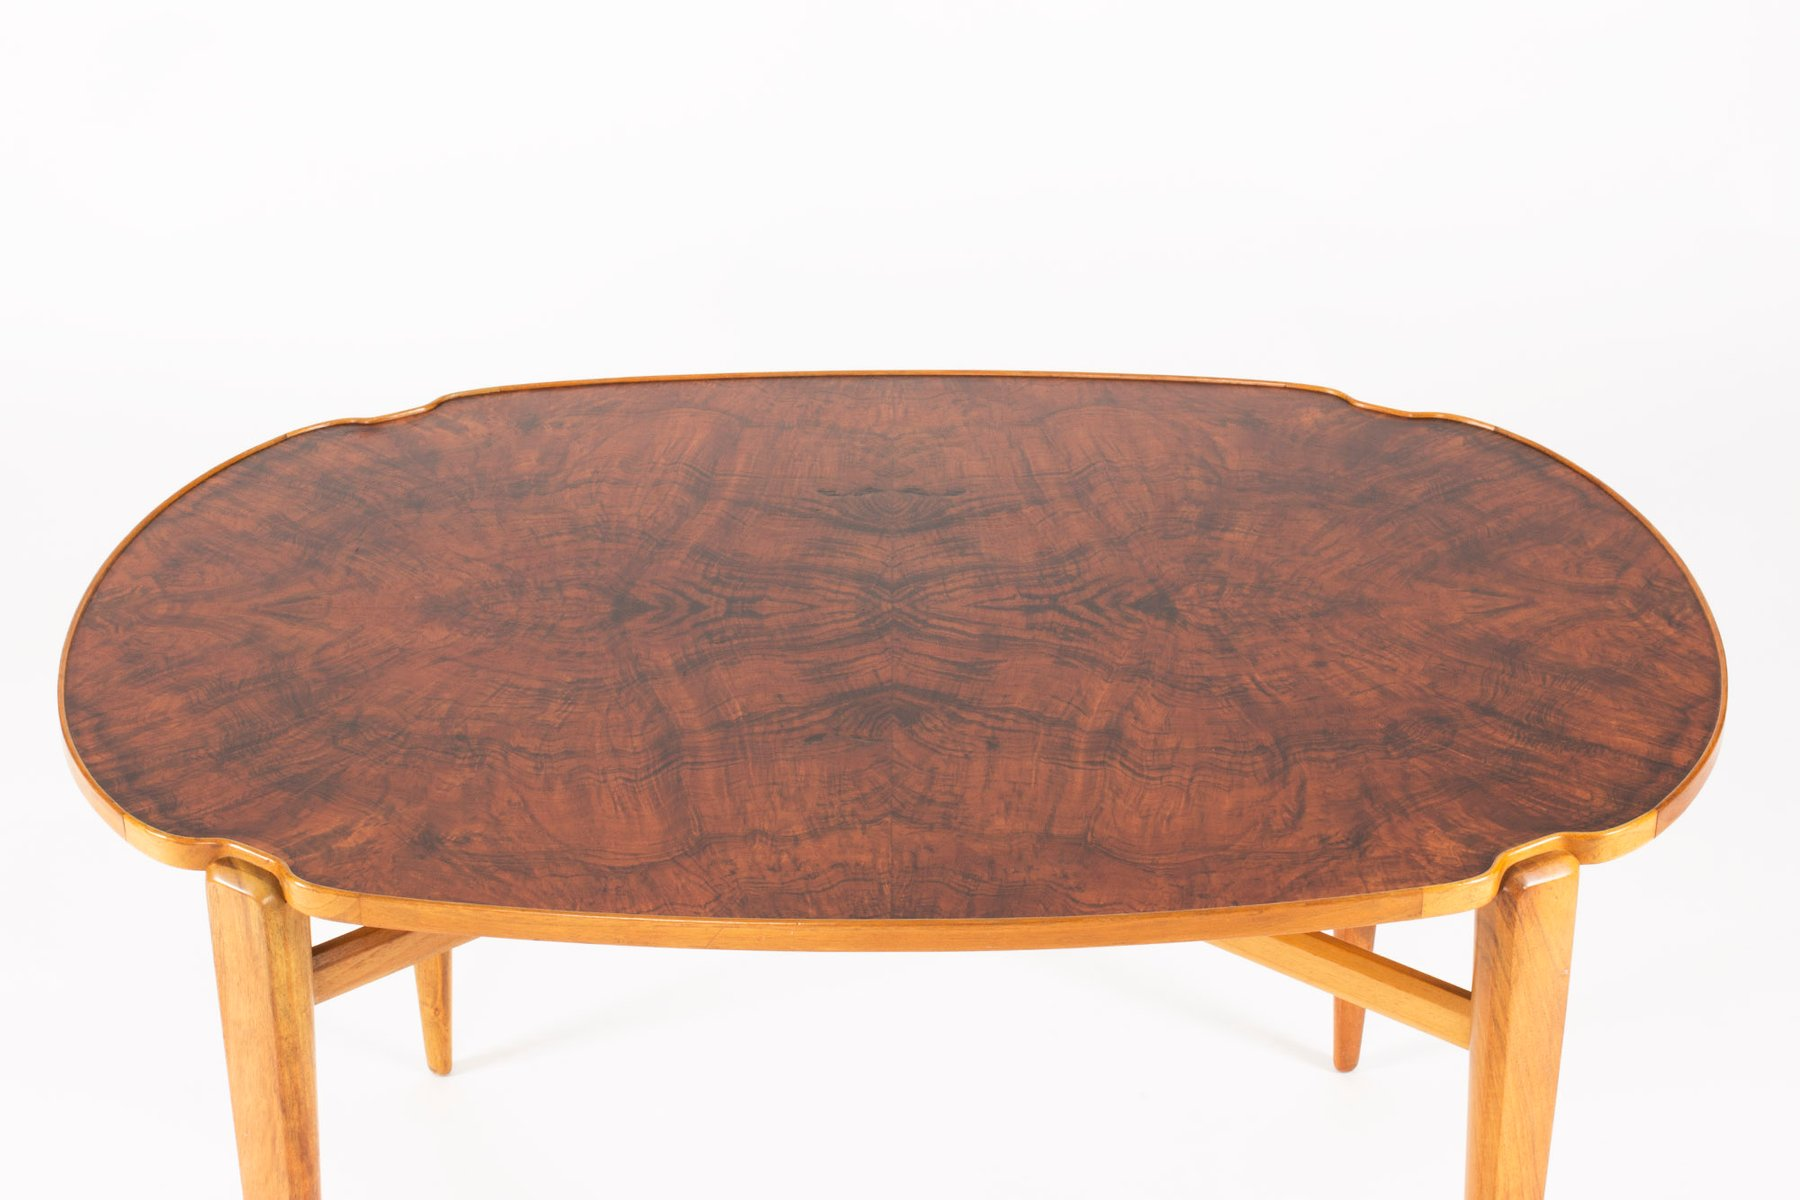 Walnut Root Coffee Table By Axel Larsson For Hjalmar Jackson 1940s For Sale At Pamono